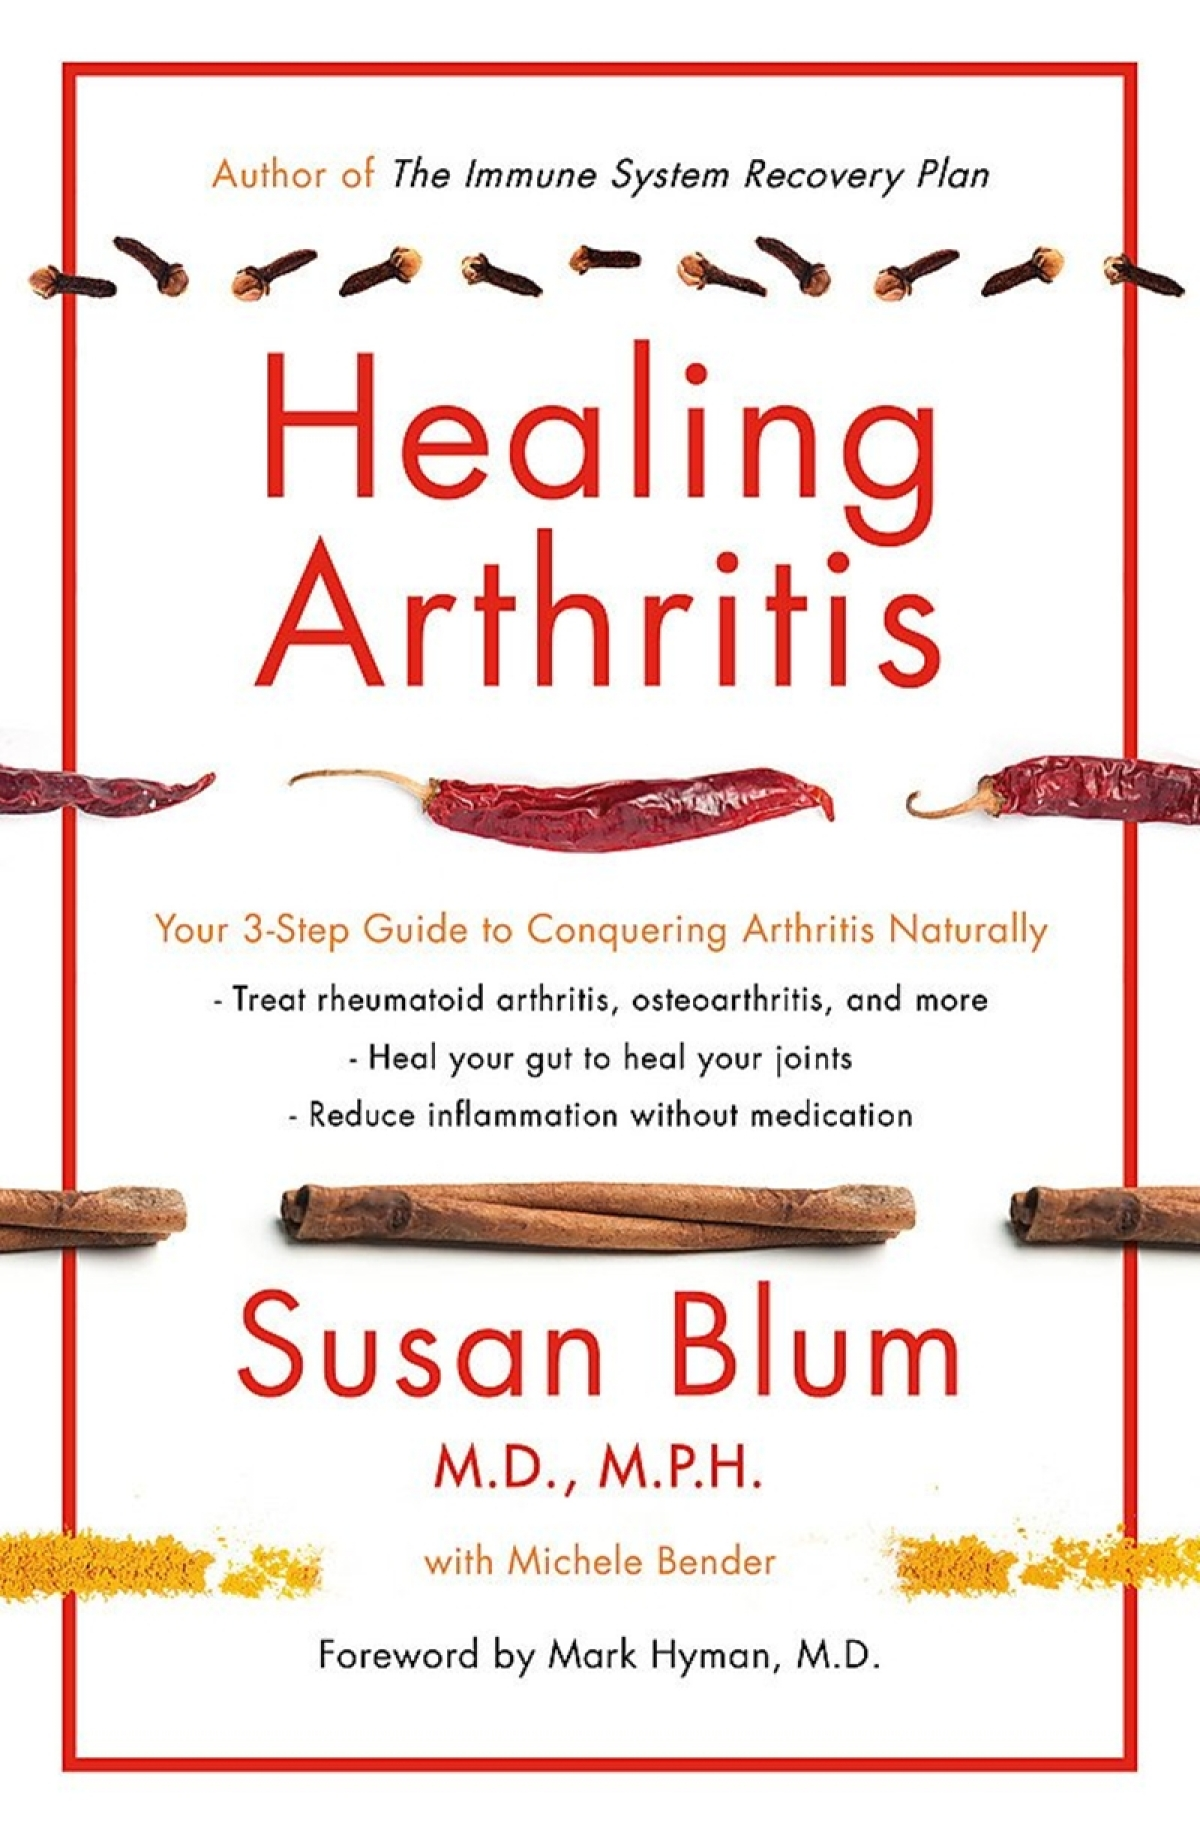 Healing Arthritis: Your 3-Step Guide to Conquering Arthritis Naturally by Susan Blum-Review